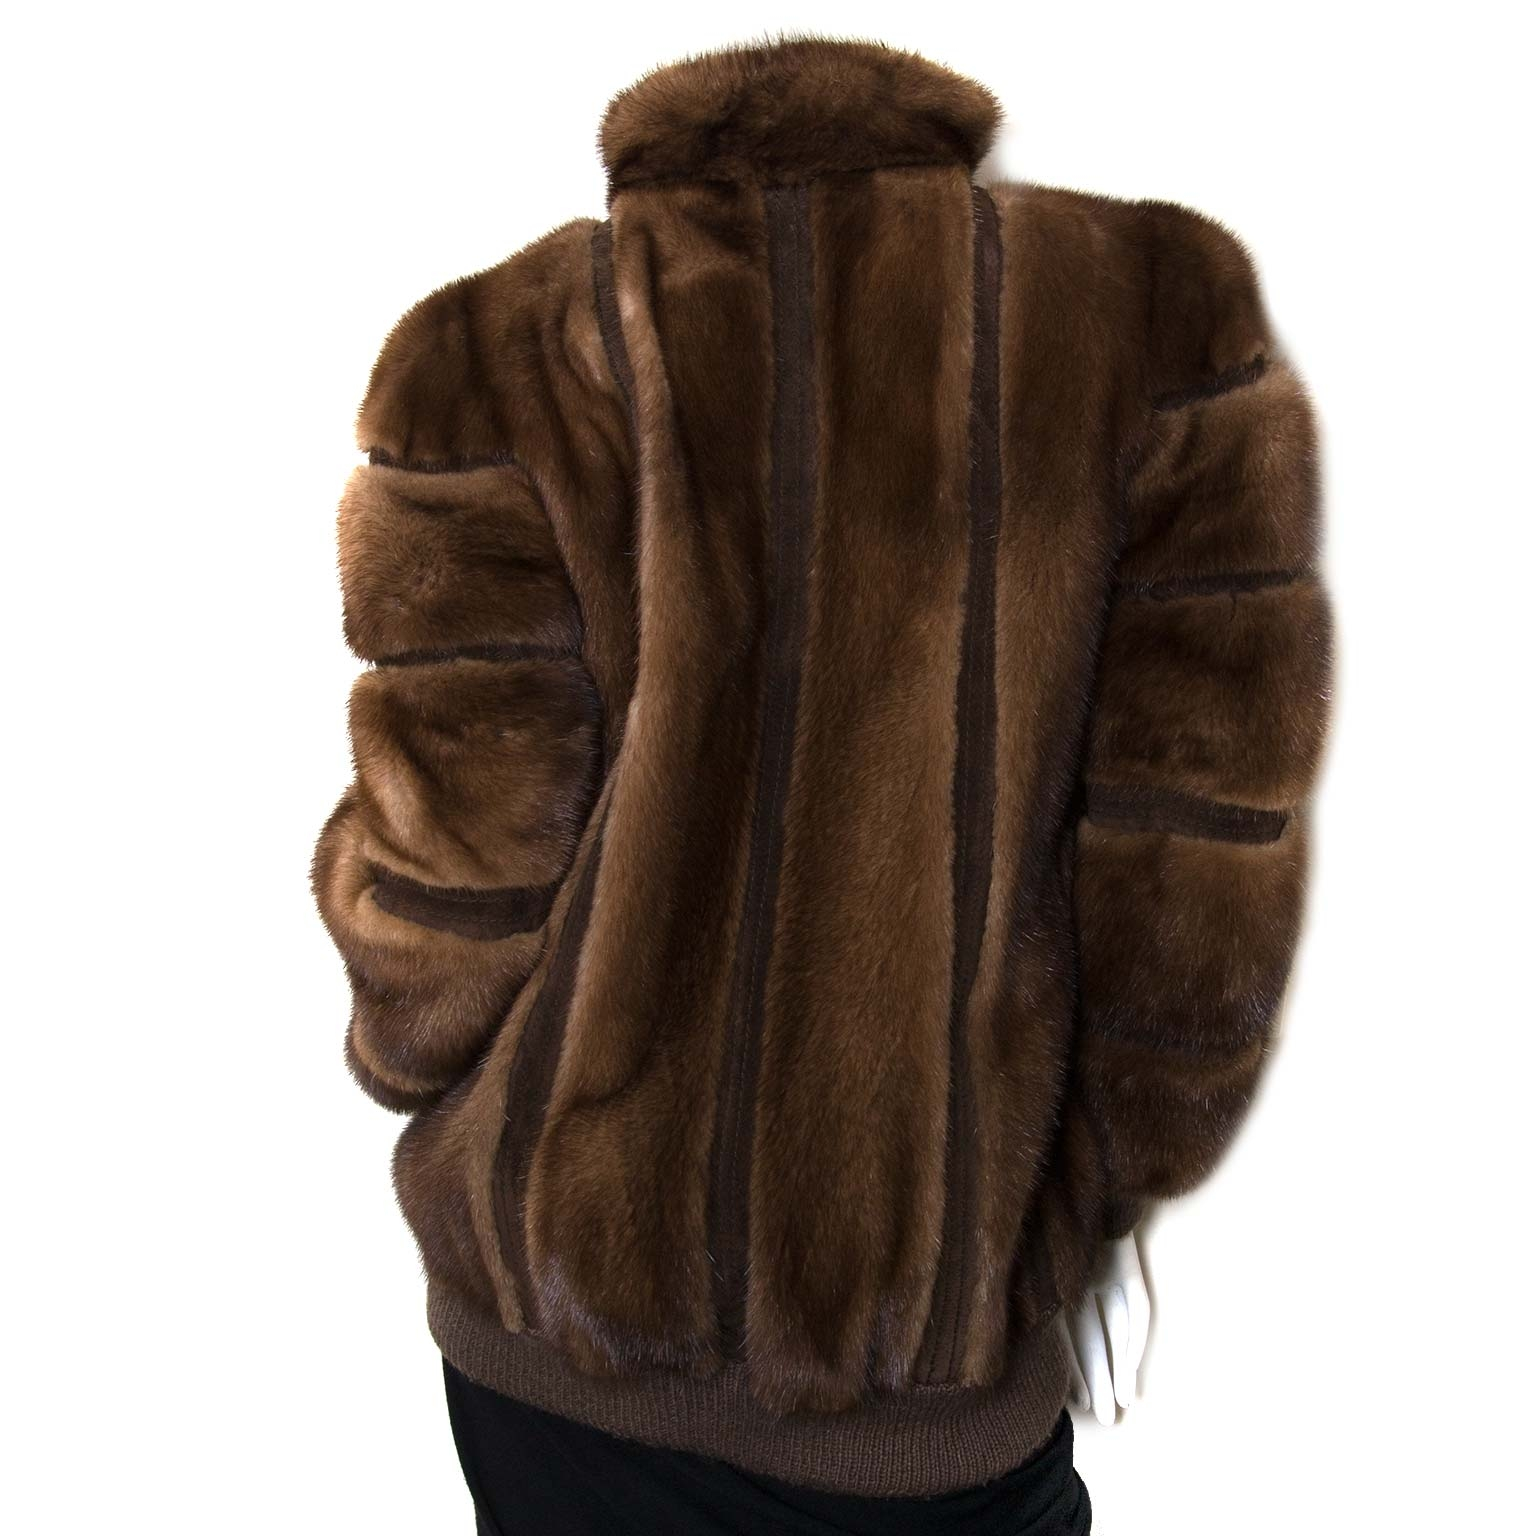 buy Christian Dior Fur Bomber Jacket at labellov for the best price